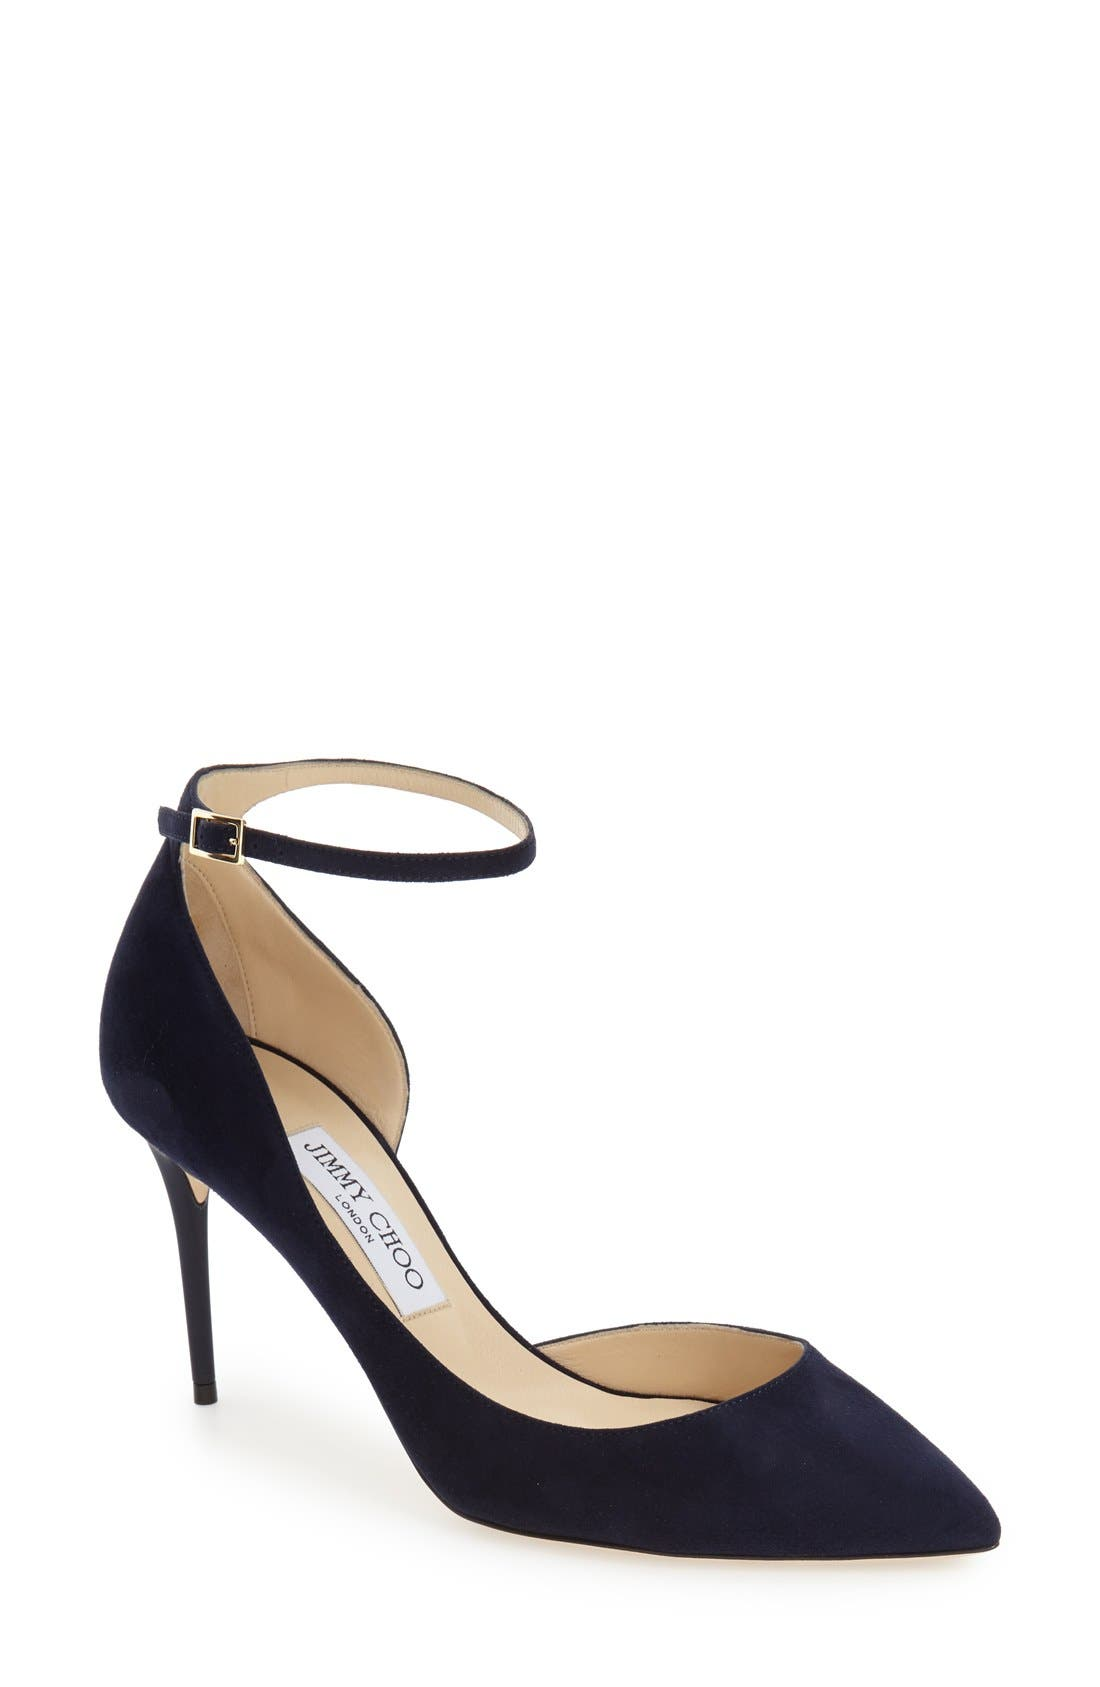 'Lucy' Half d'Orsay Pointy Toe Pump,                             Main thumbnail 1, color,                             410